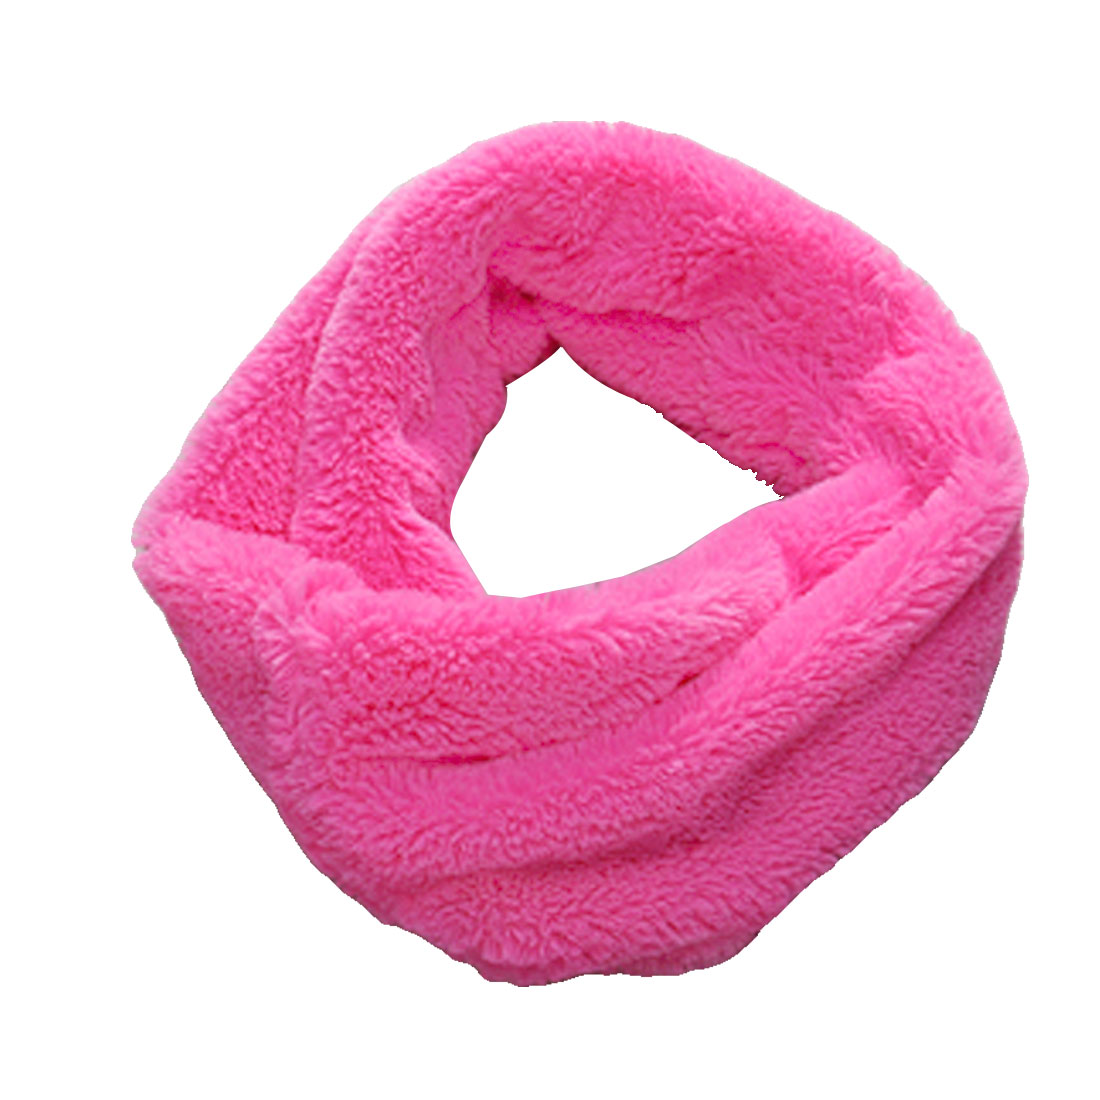 Bright Pink Crew Neck Design Soft Menswear Fuzzy Circle Scarves